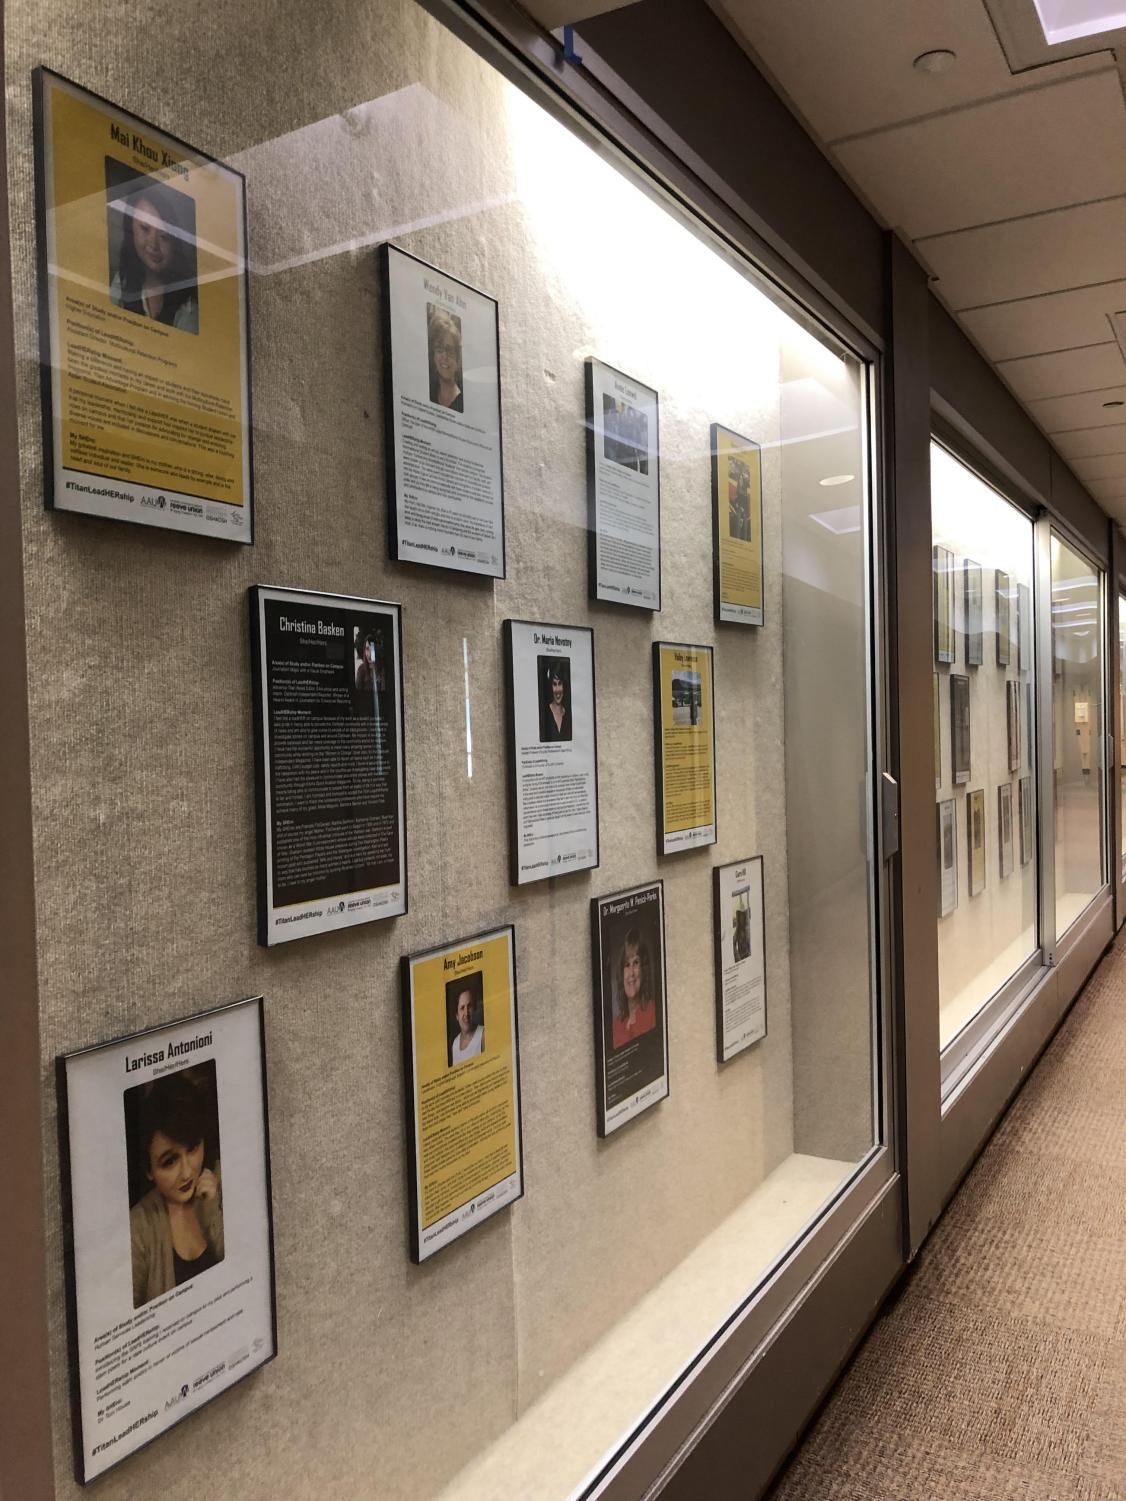 Plaques of leadHERs are displayed on the second floor hallway in Reeve Memorial Union in honor of Women's HERstory Month celebrated on campus.